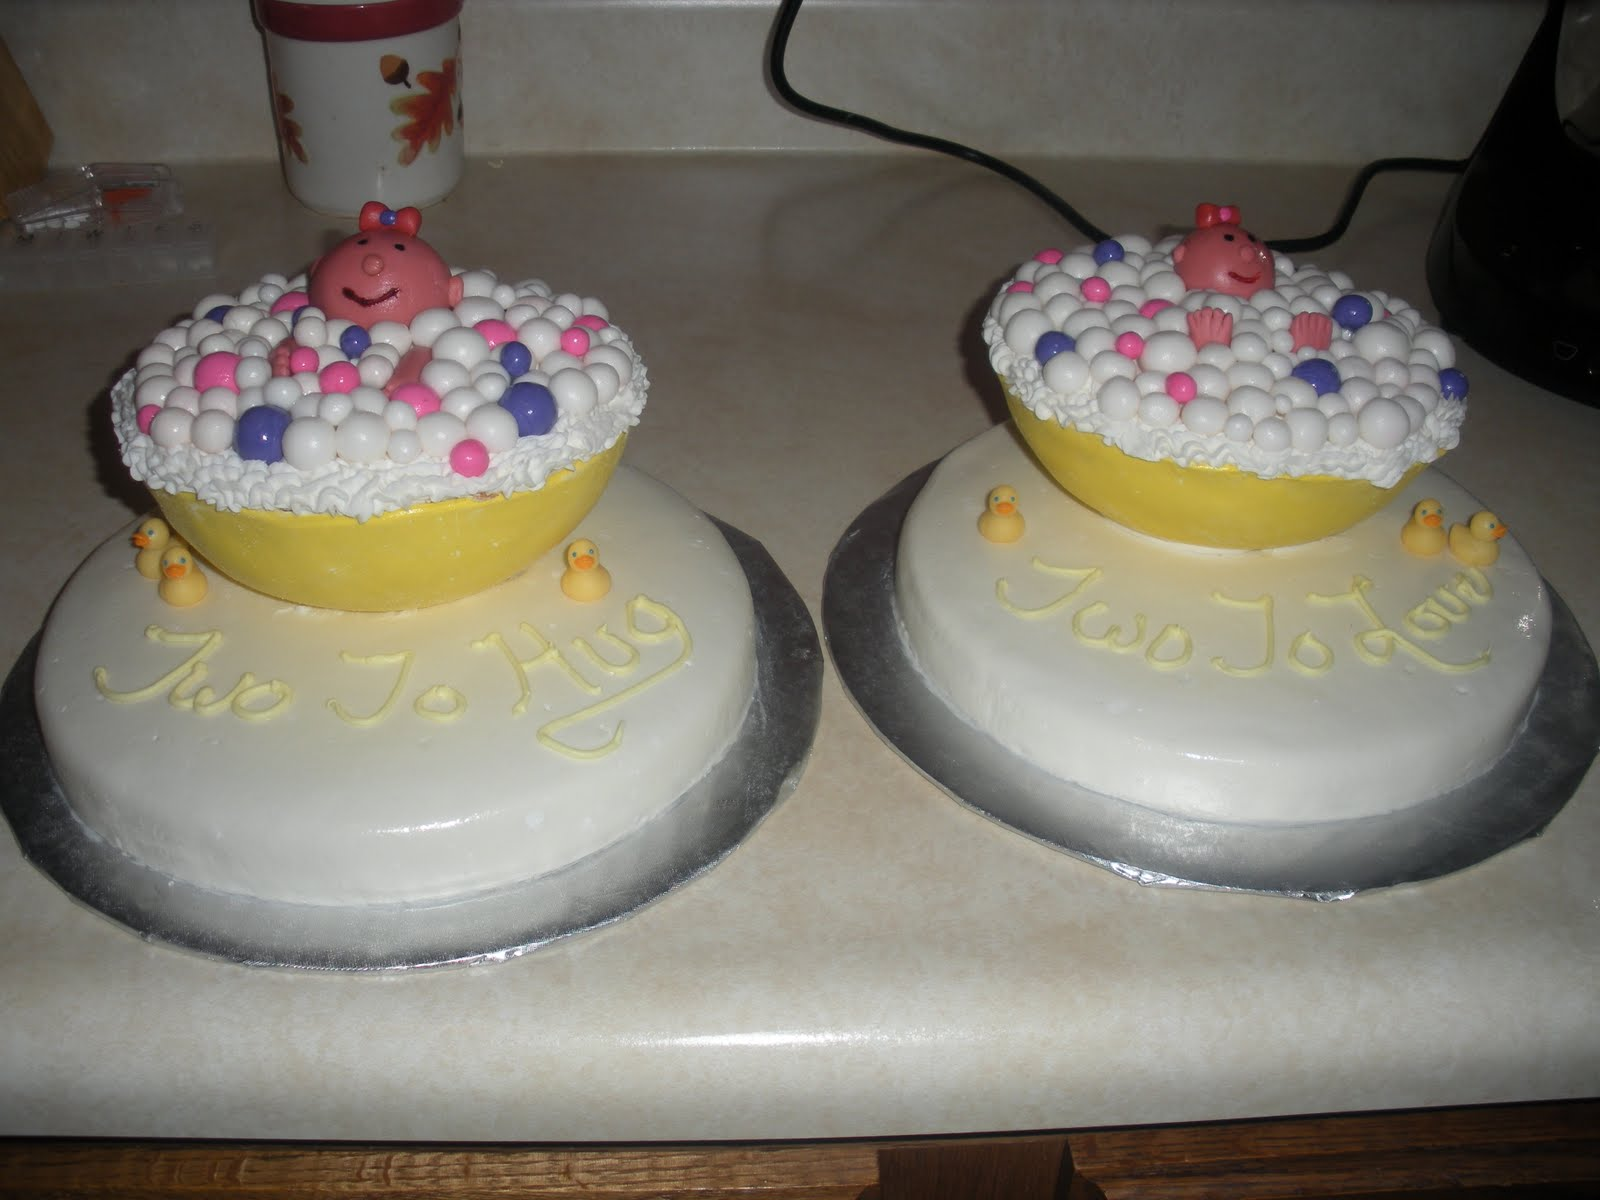 ... much fun making these cakes for a baby shower, twin girls